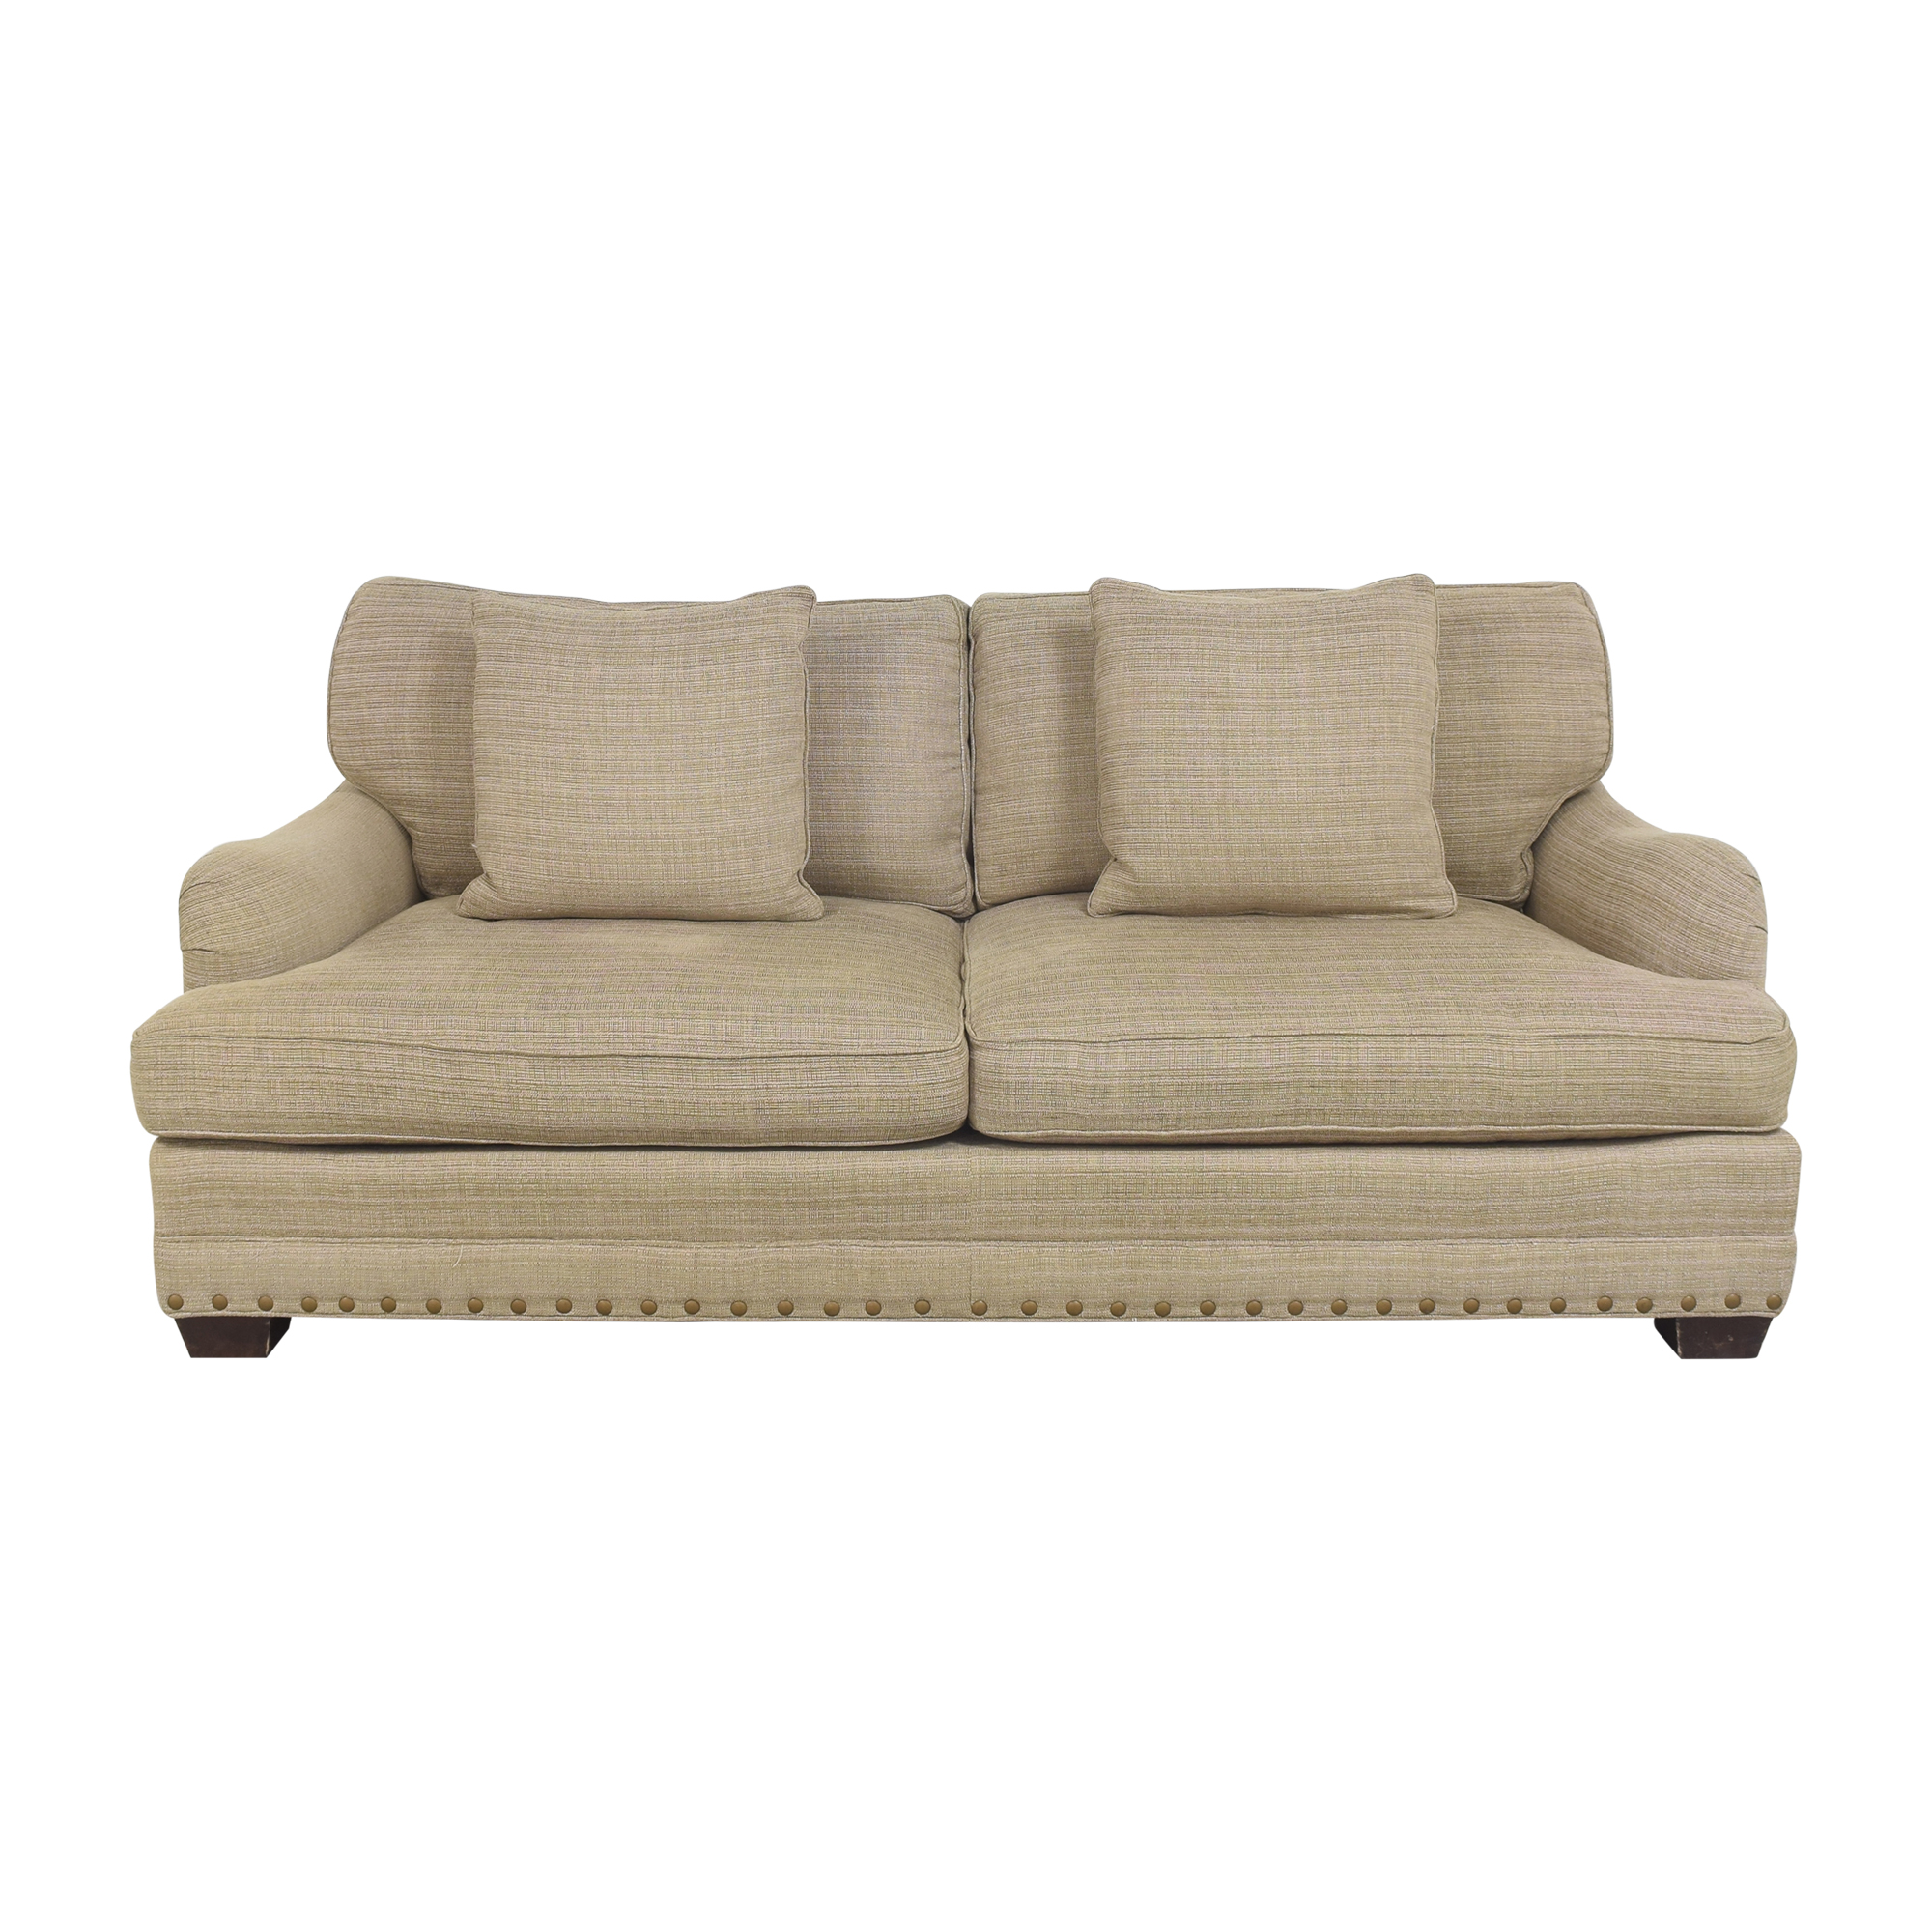 Lee Industries Lee Industries English Roll Arm Sofa coupon